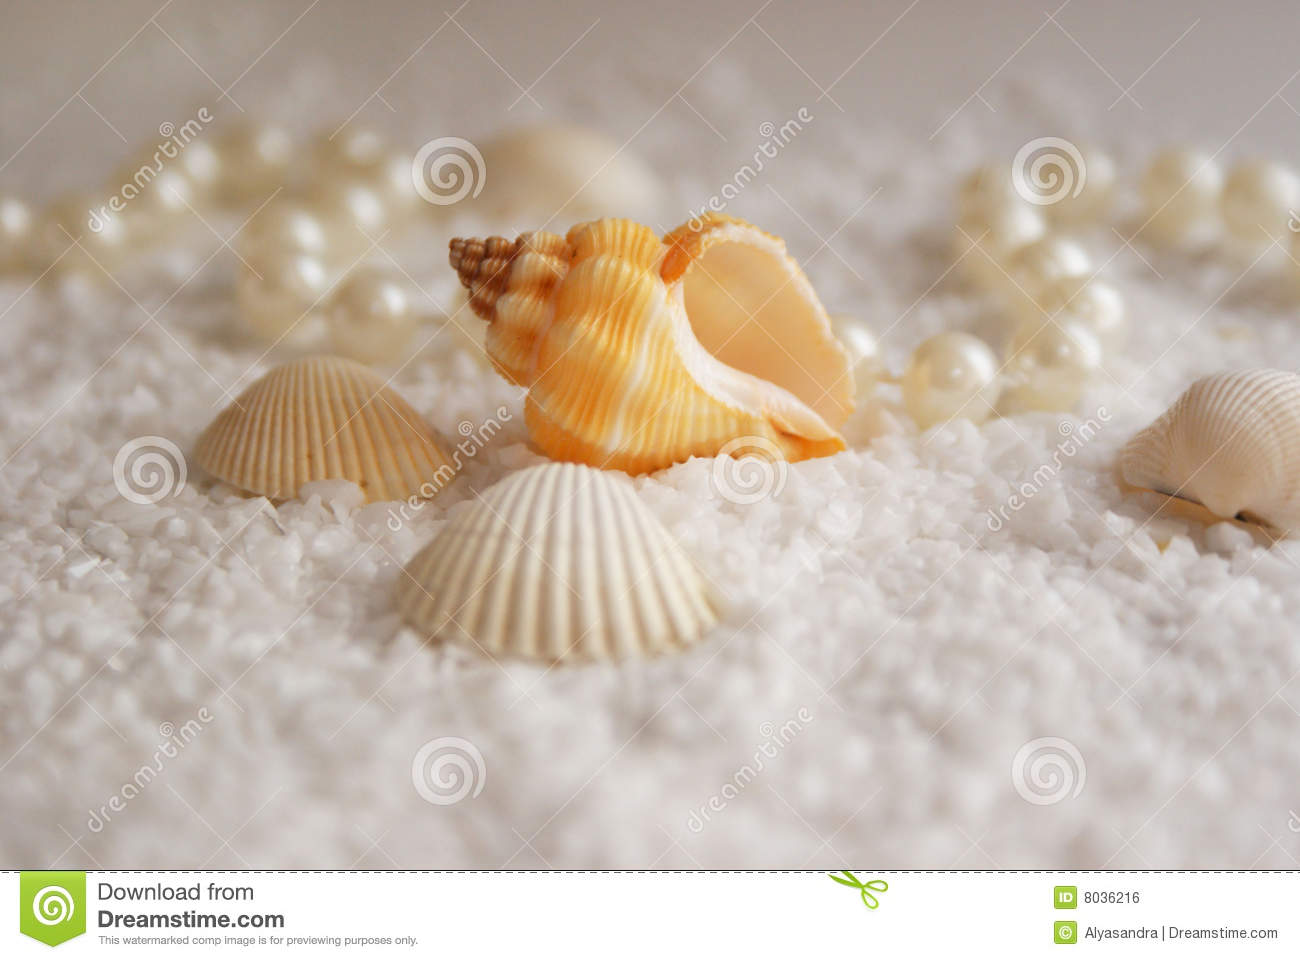 The seashells and the pearls